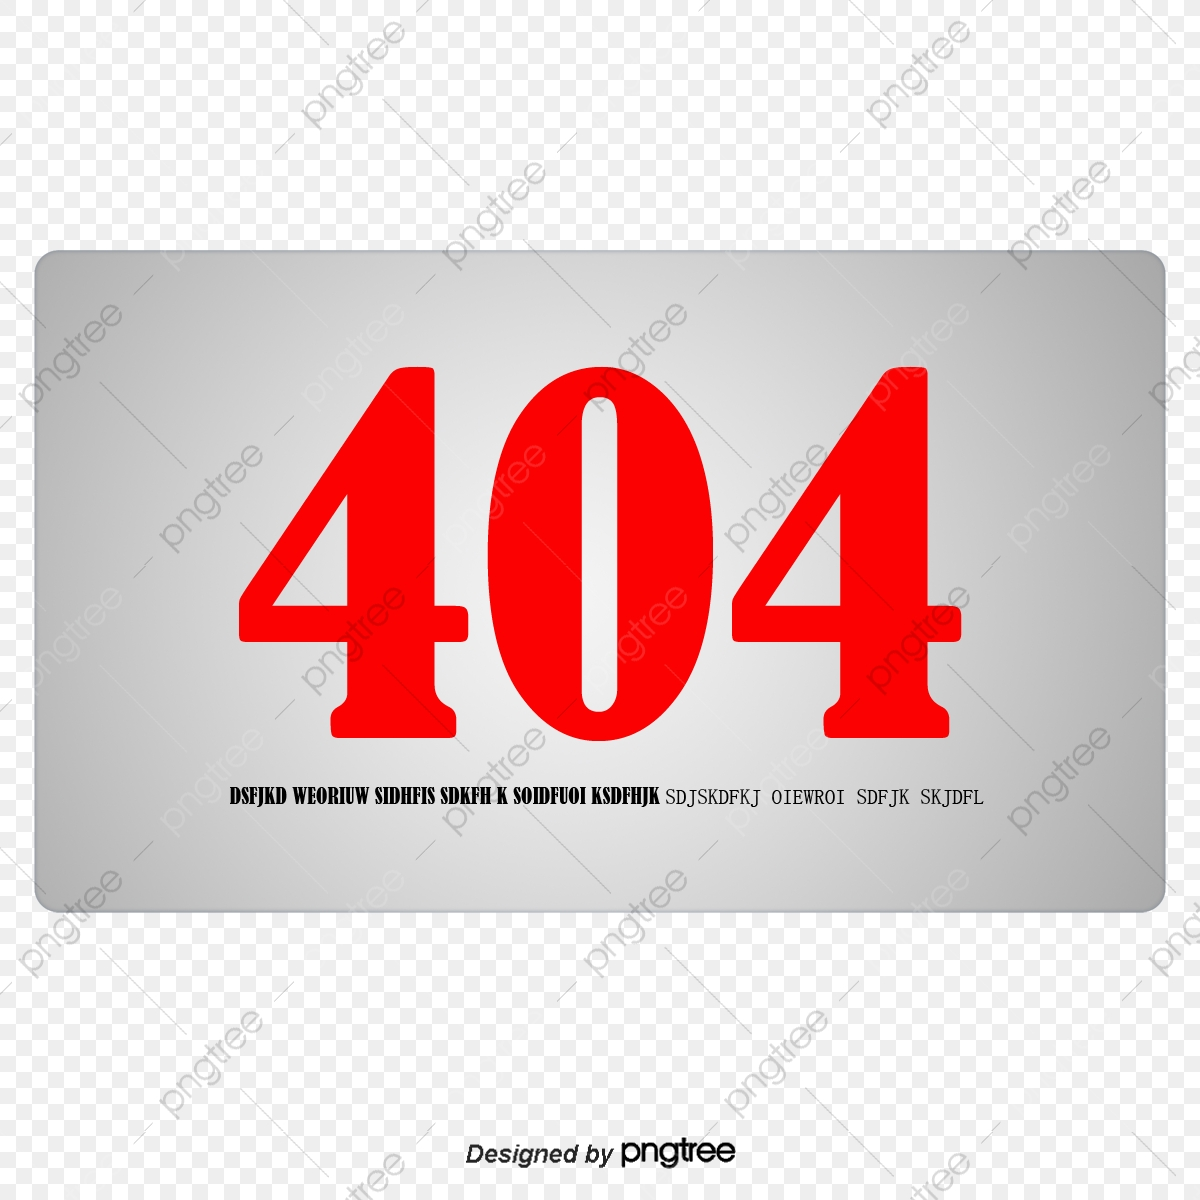 404 Error Page, Error Pages, 404, Web Page PNG Transparent Clipart.